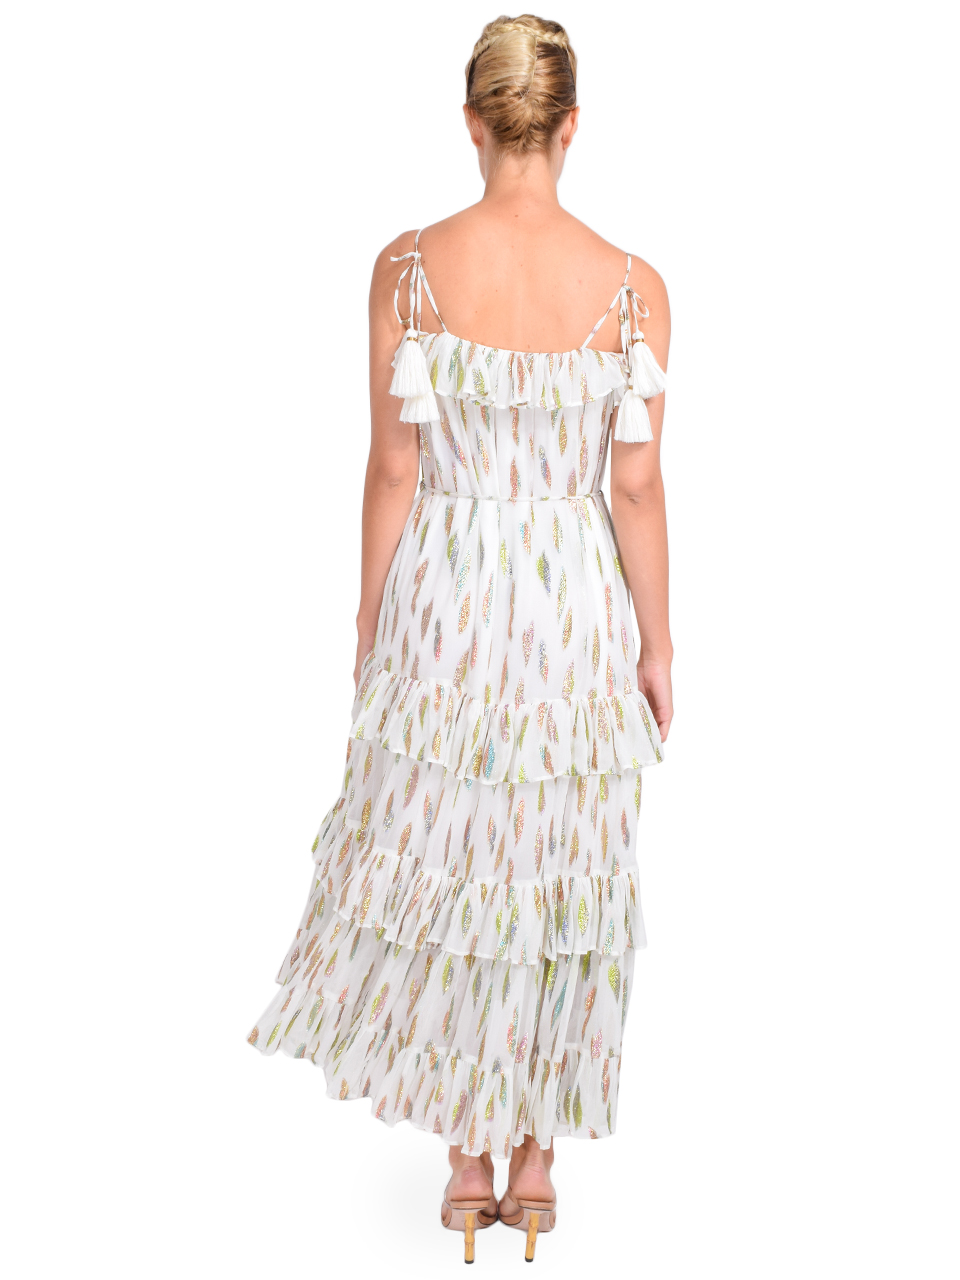 Karina Grimaldi Lori Metallic Print Dress with White Leaf Back View